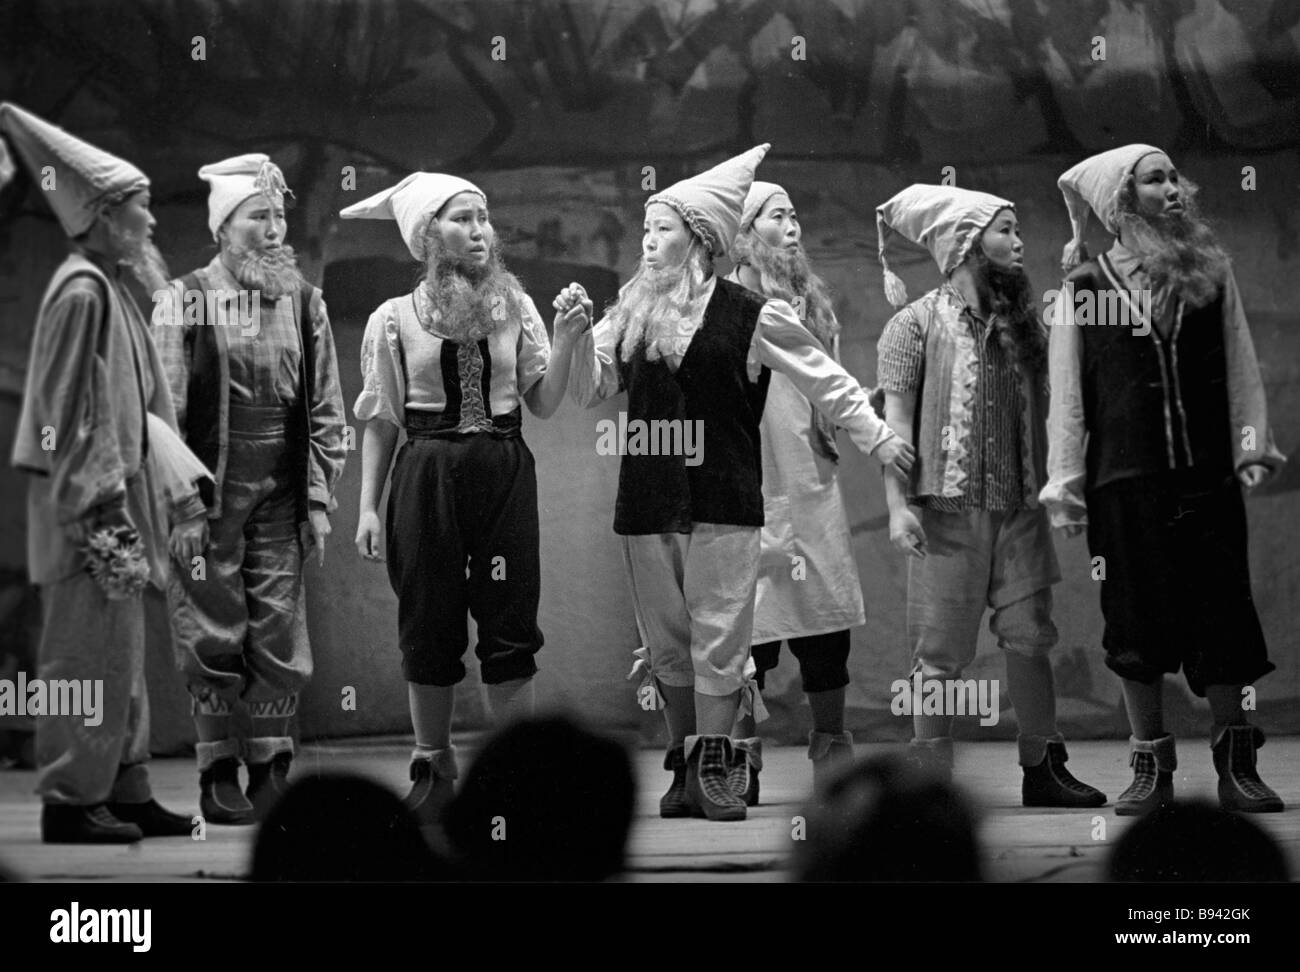 Students of the Kyzyl Art School performing The Snow White and Seven Dwarfs - Stock Image